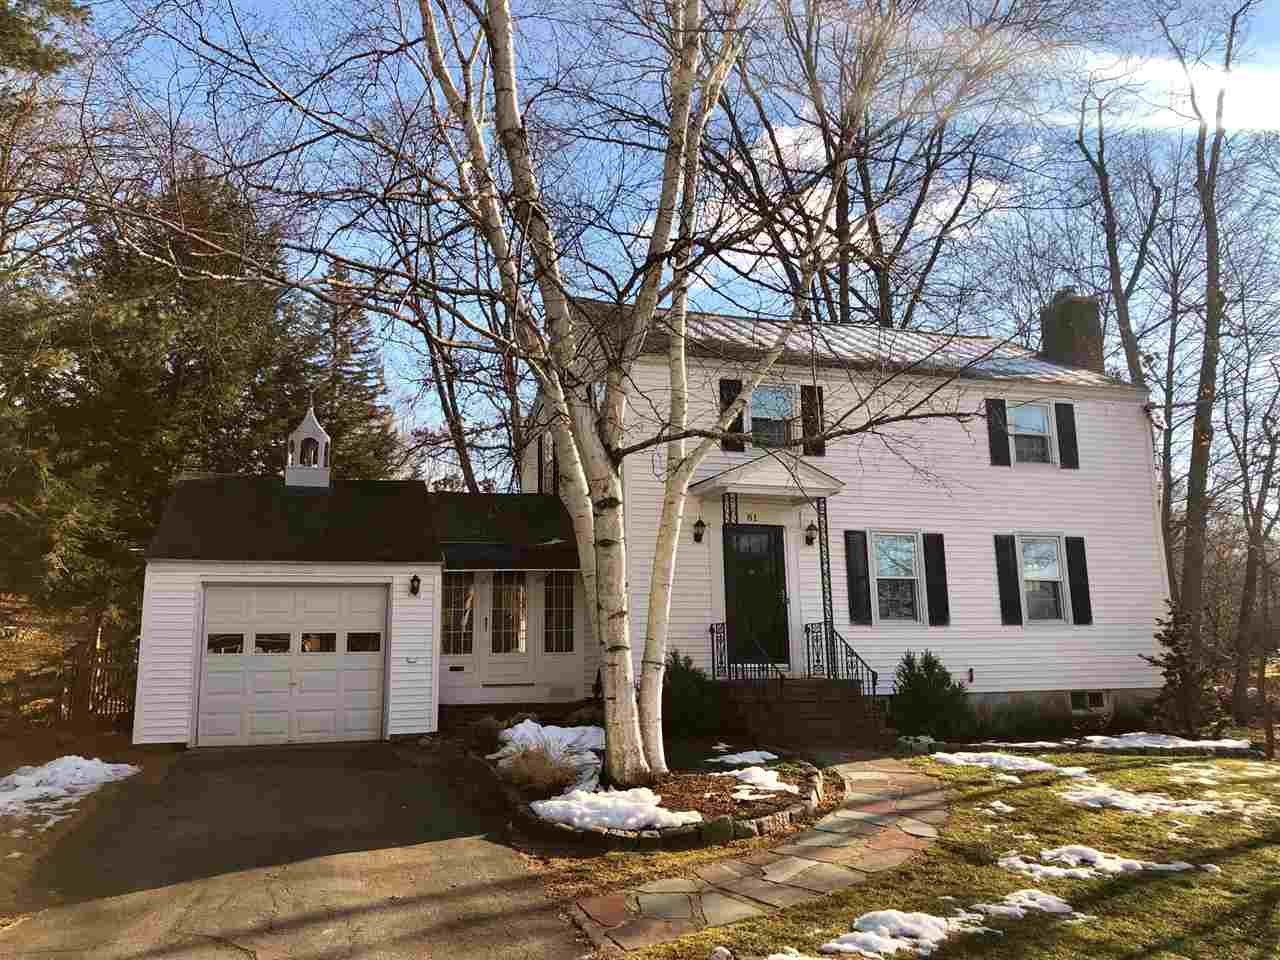 Photo of 81 Pickering Street Manchester NH 03104